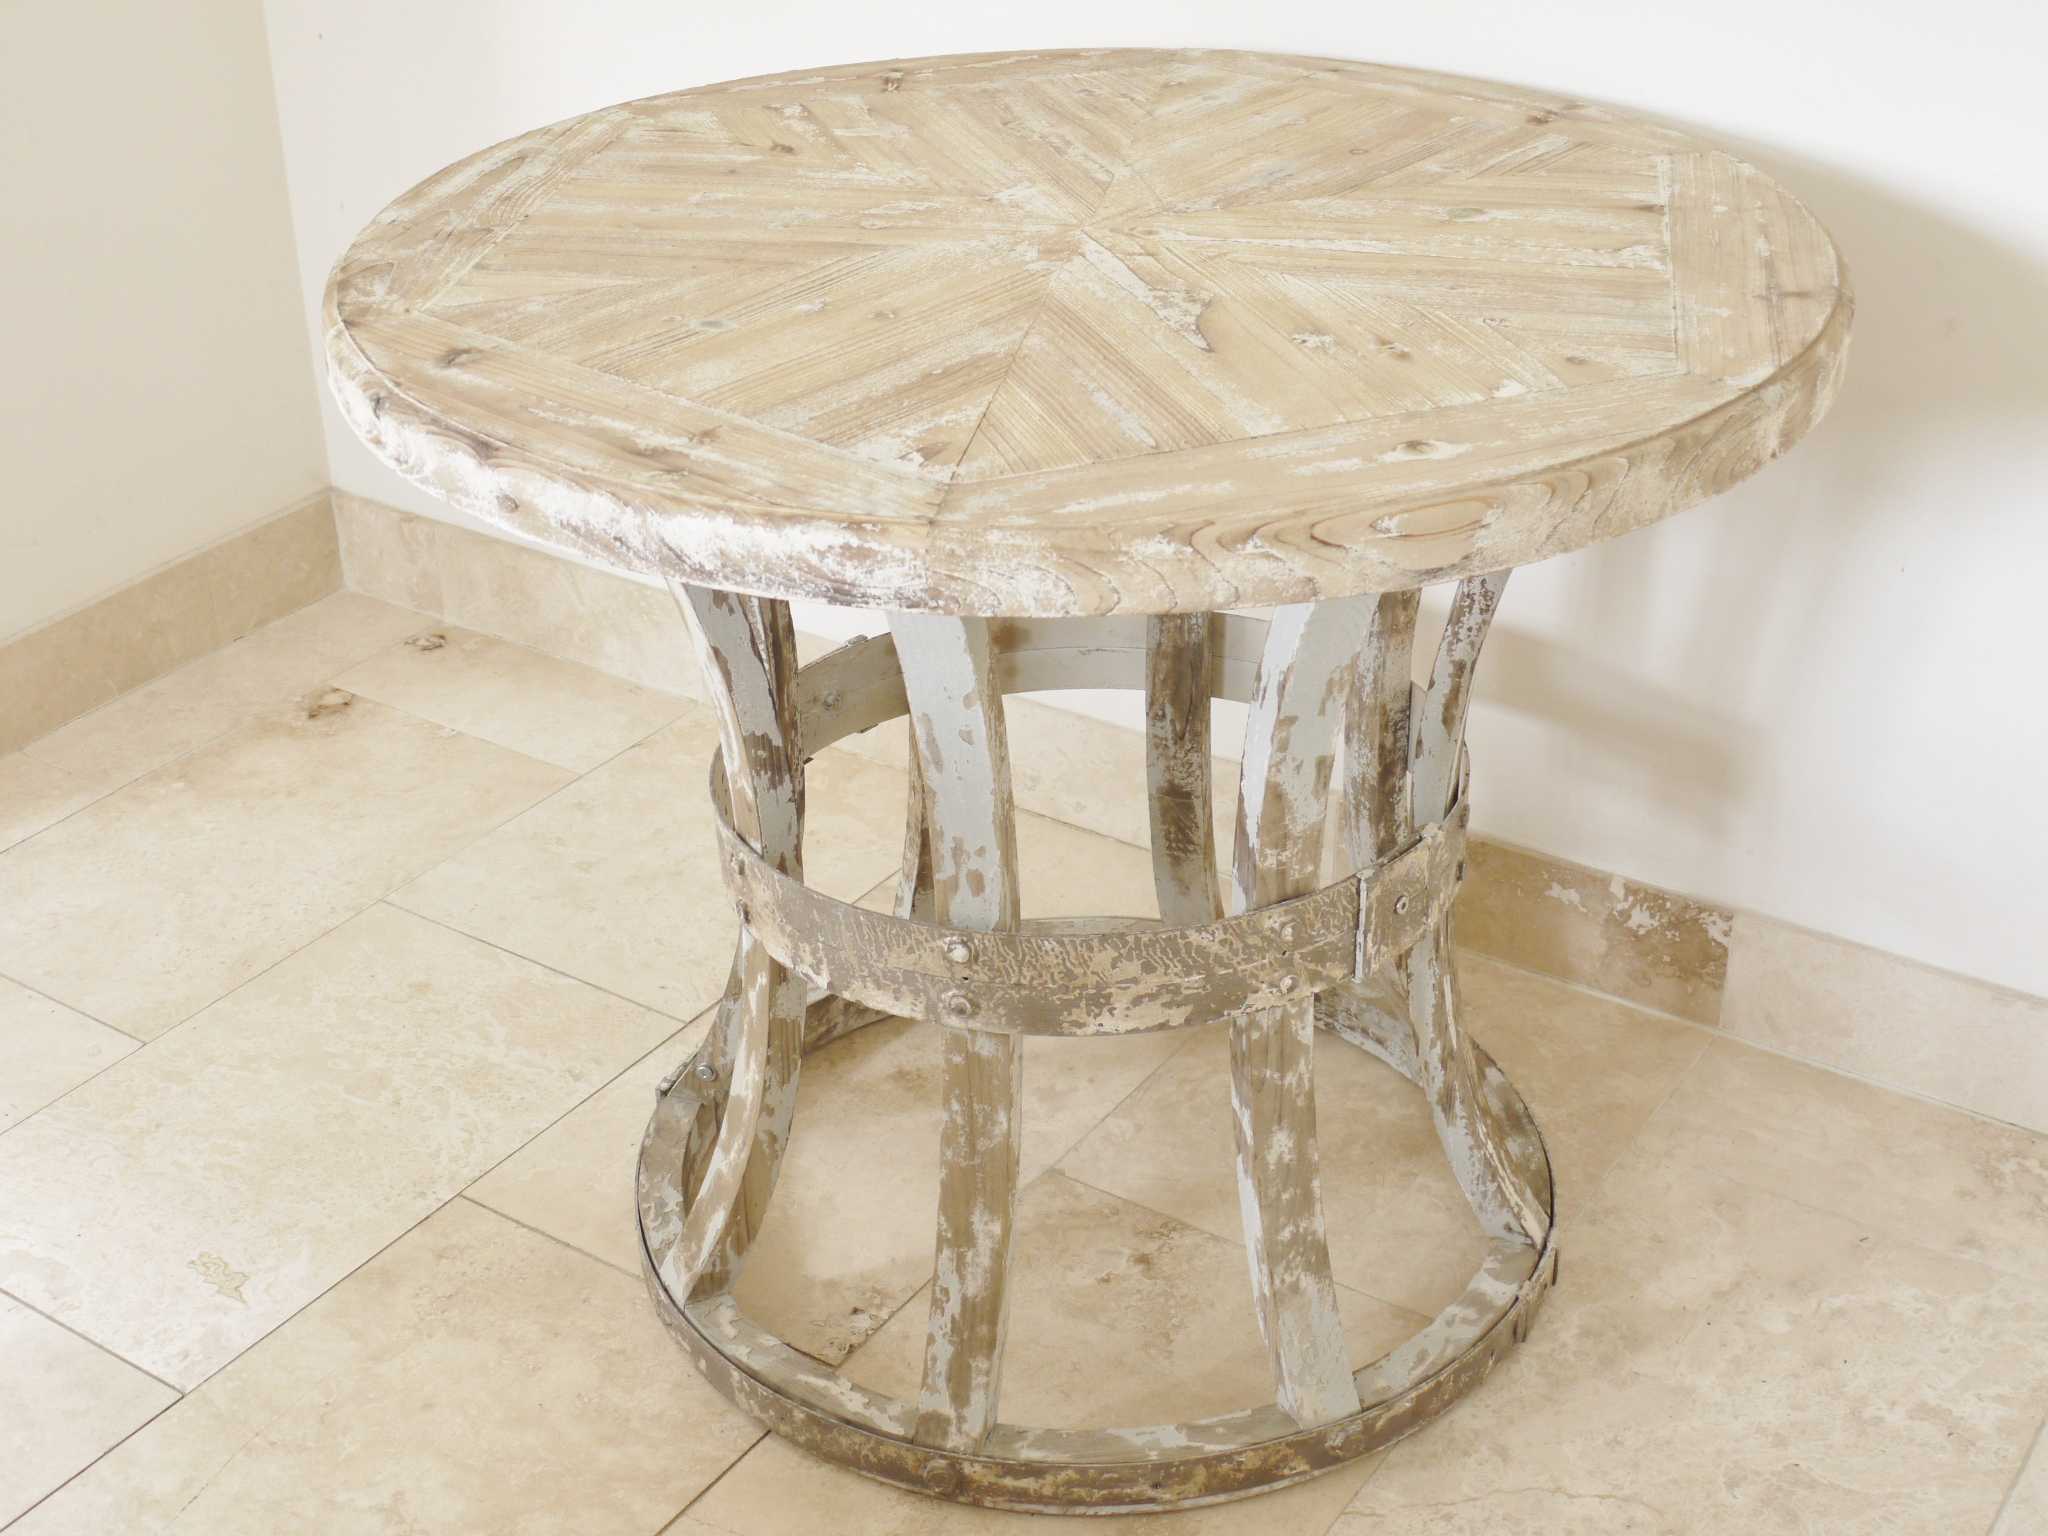 Round Wooden Distressed Style Dining Table